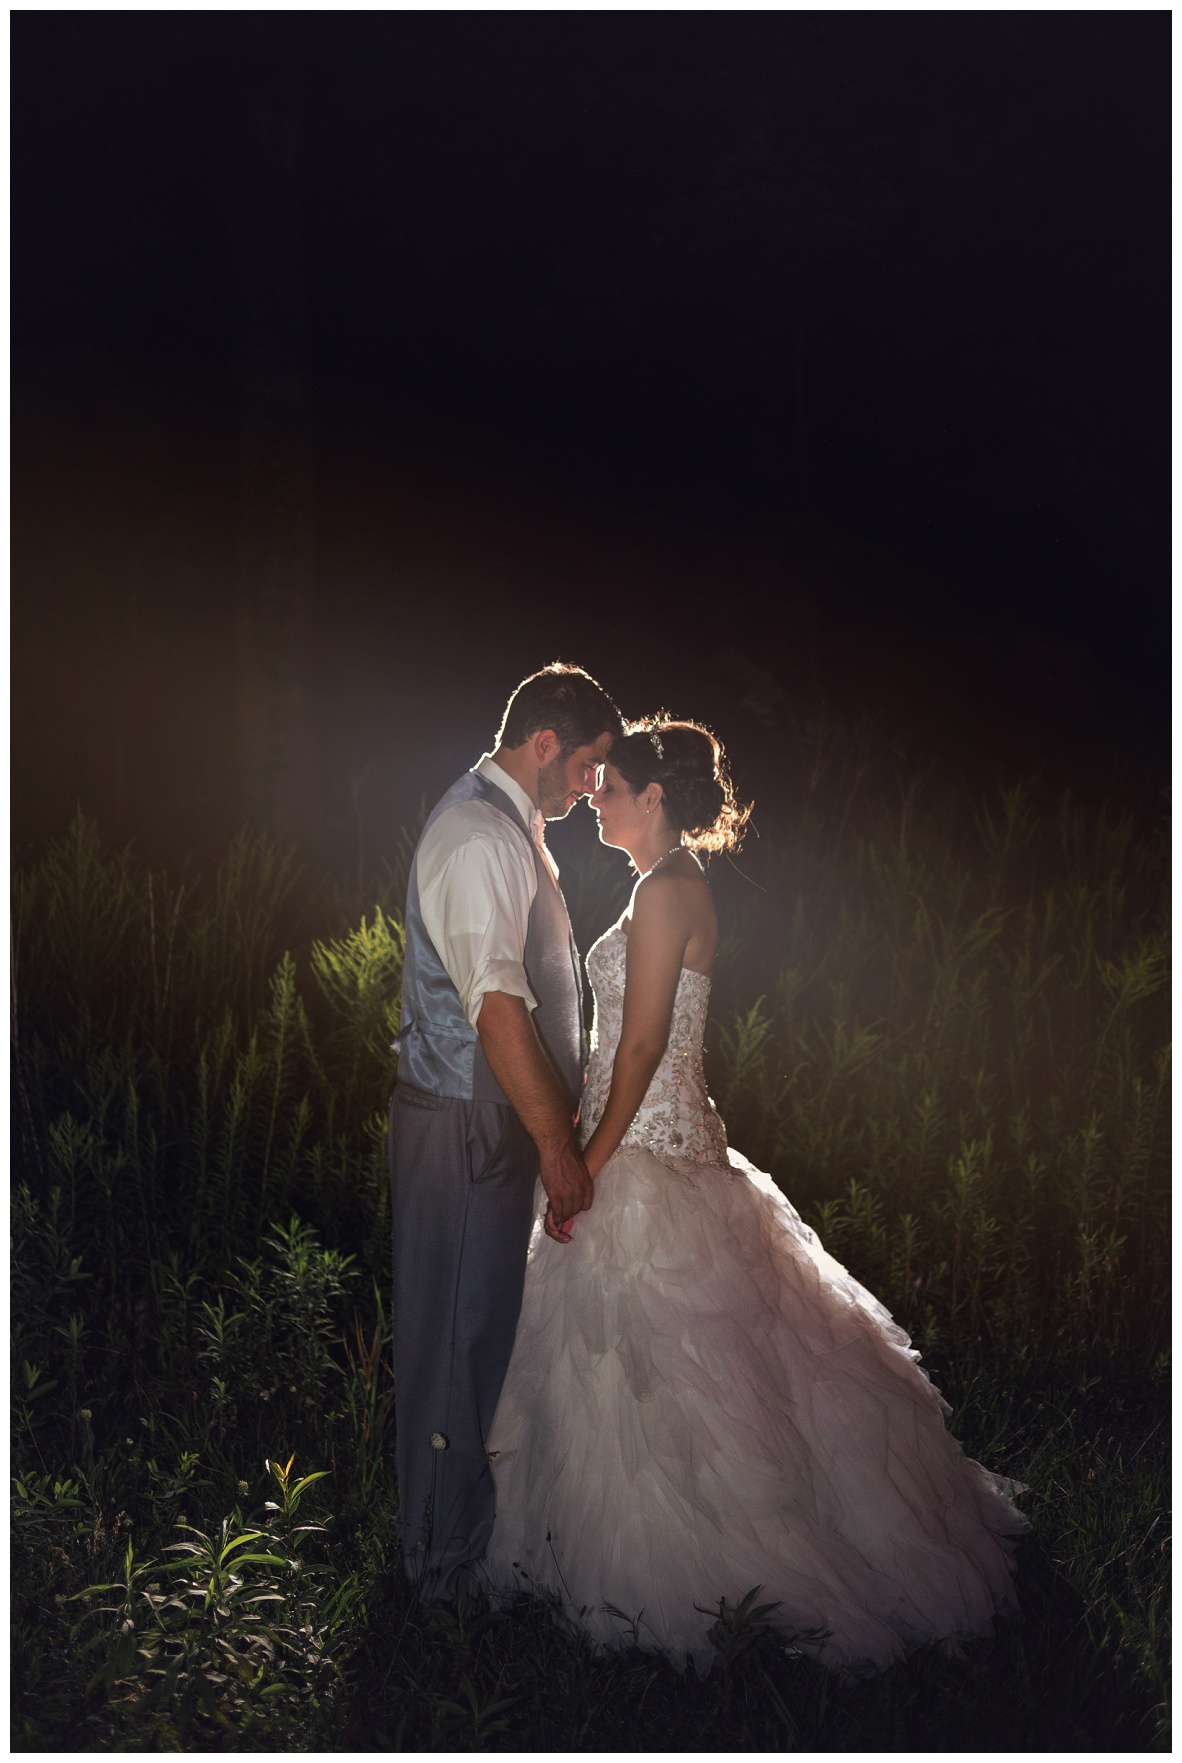 Mr. and Mrs. King_0104.jpg